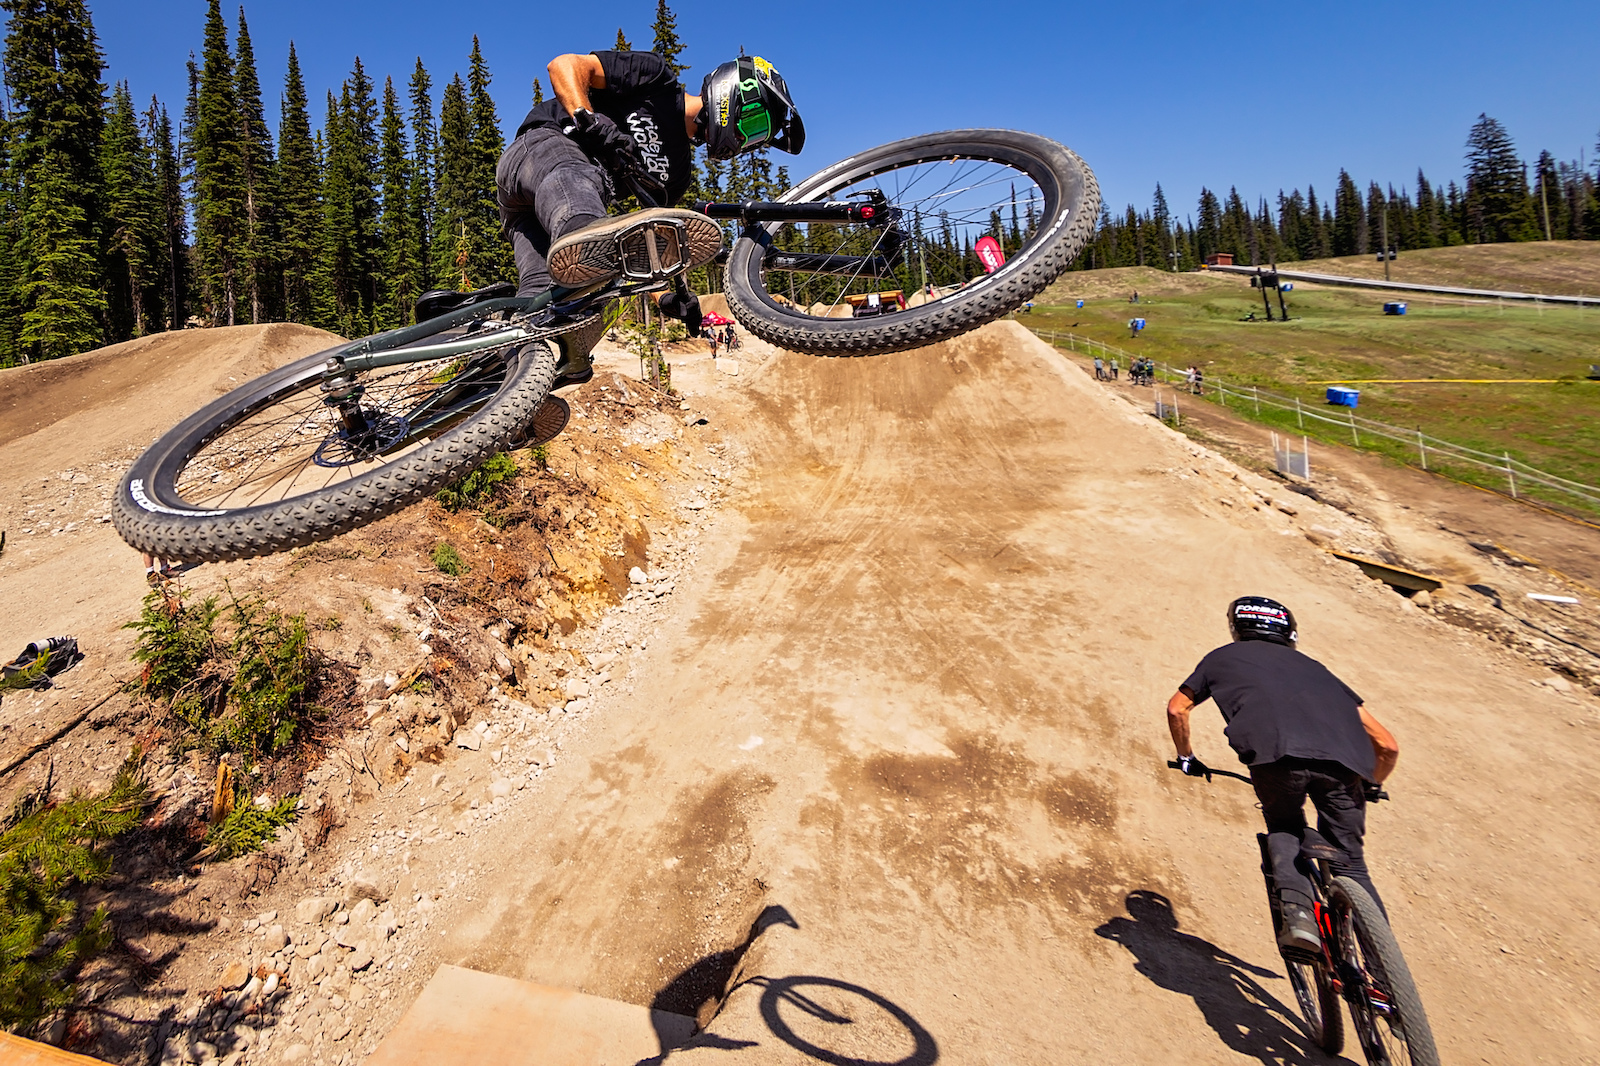 Big White Slopestyle Invitational shot at Big White in British Columbia on July 5 2018. photo by clint trahan clinttrahan.com